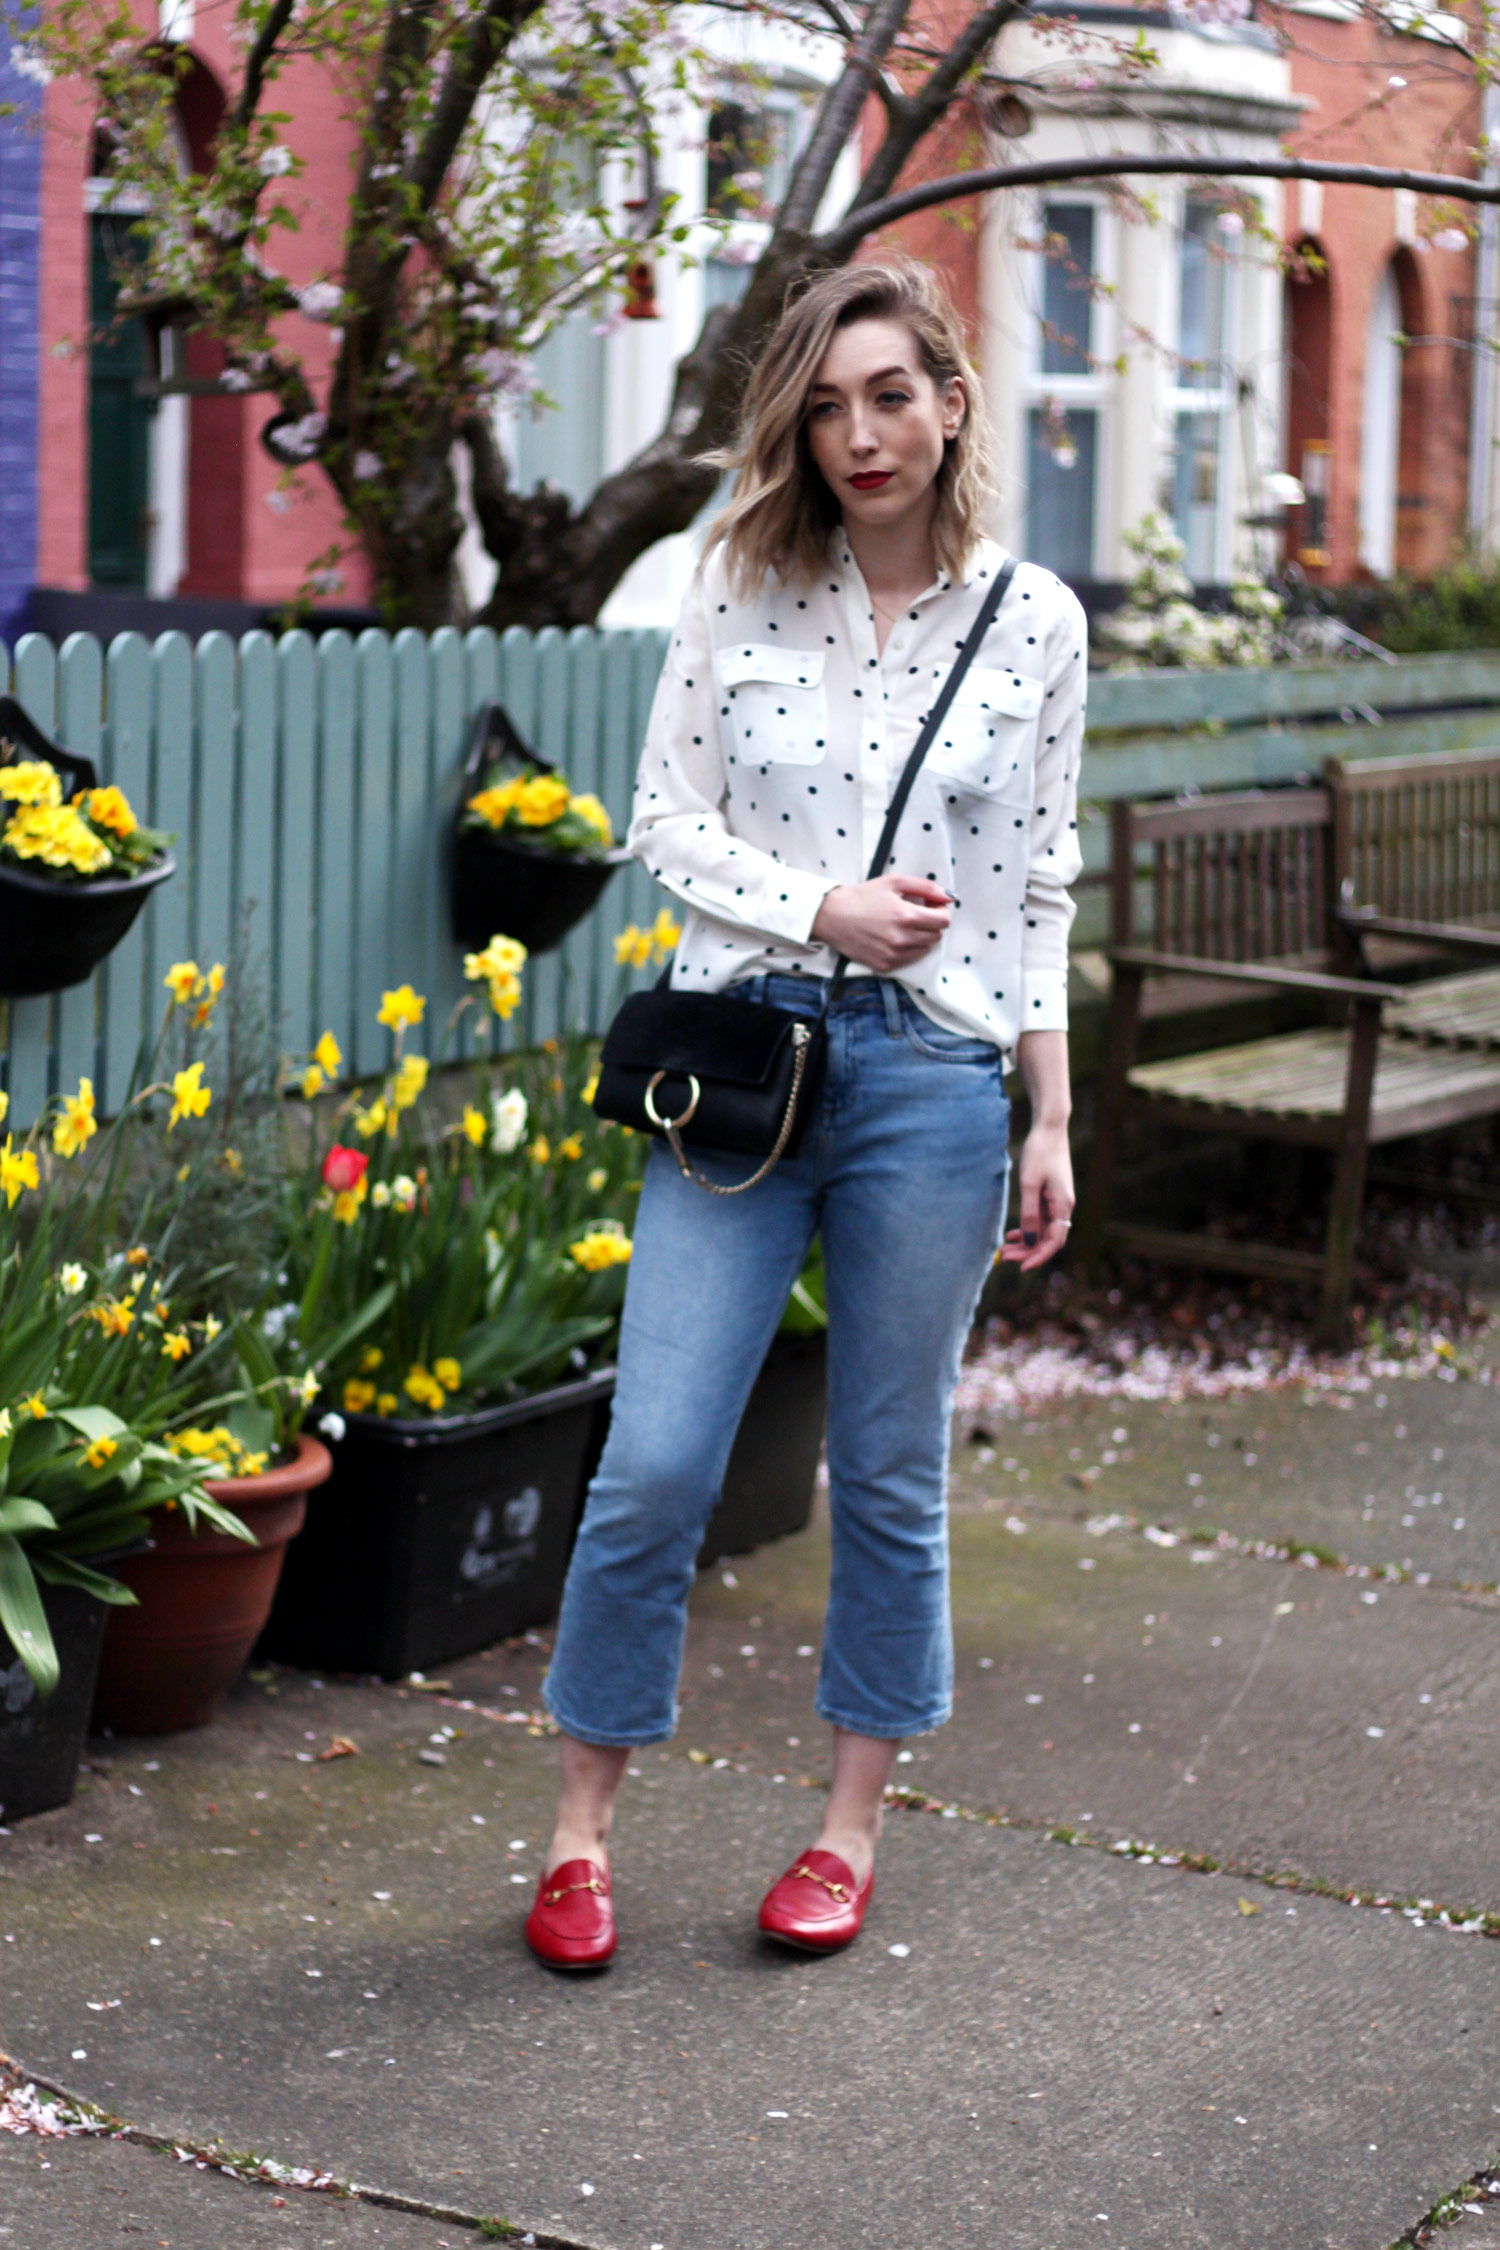 boden-polkadot-shirt-BDG-jeans-gucci-red-jordaan-loafers-1